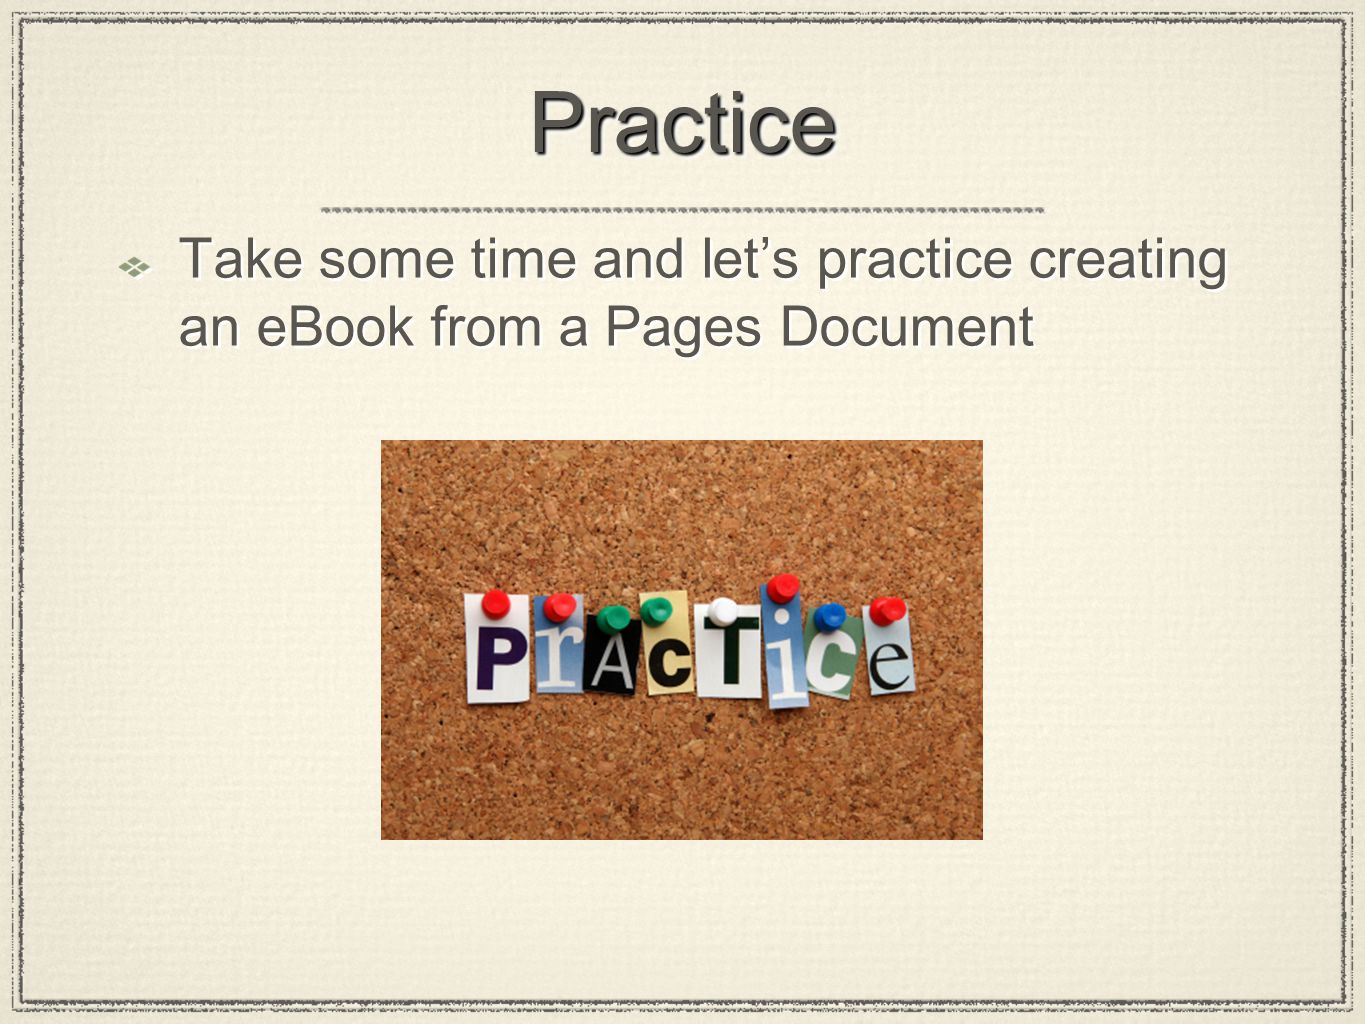 PracticePractice Take some time and let's practice creating an eBook from a Pages Document